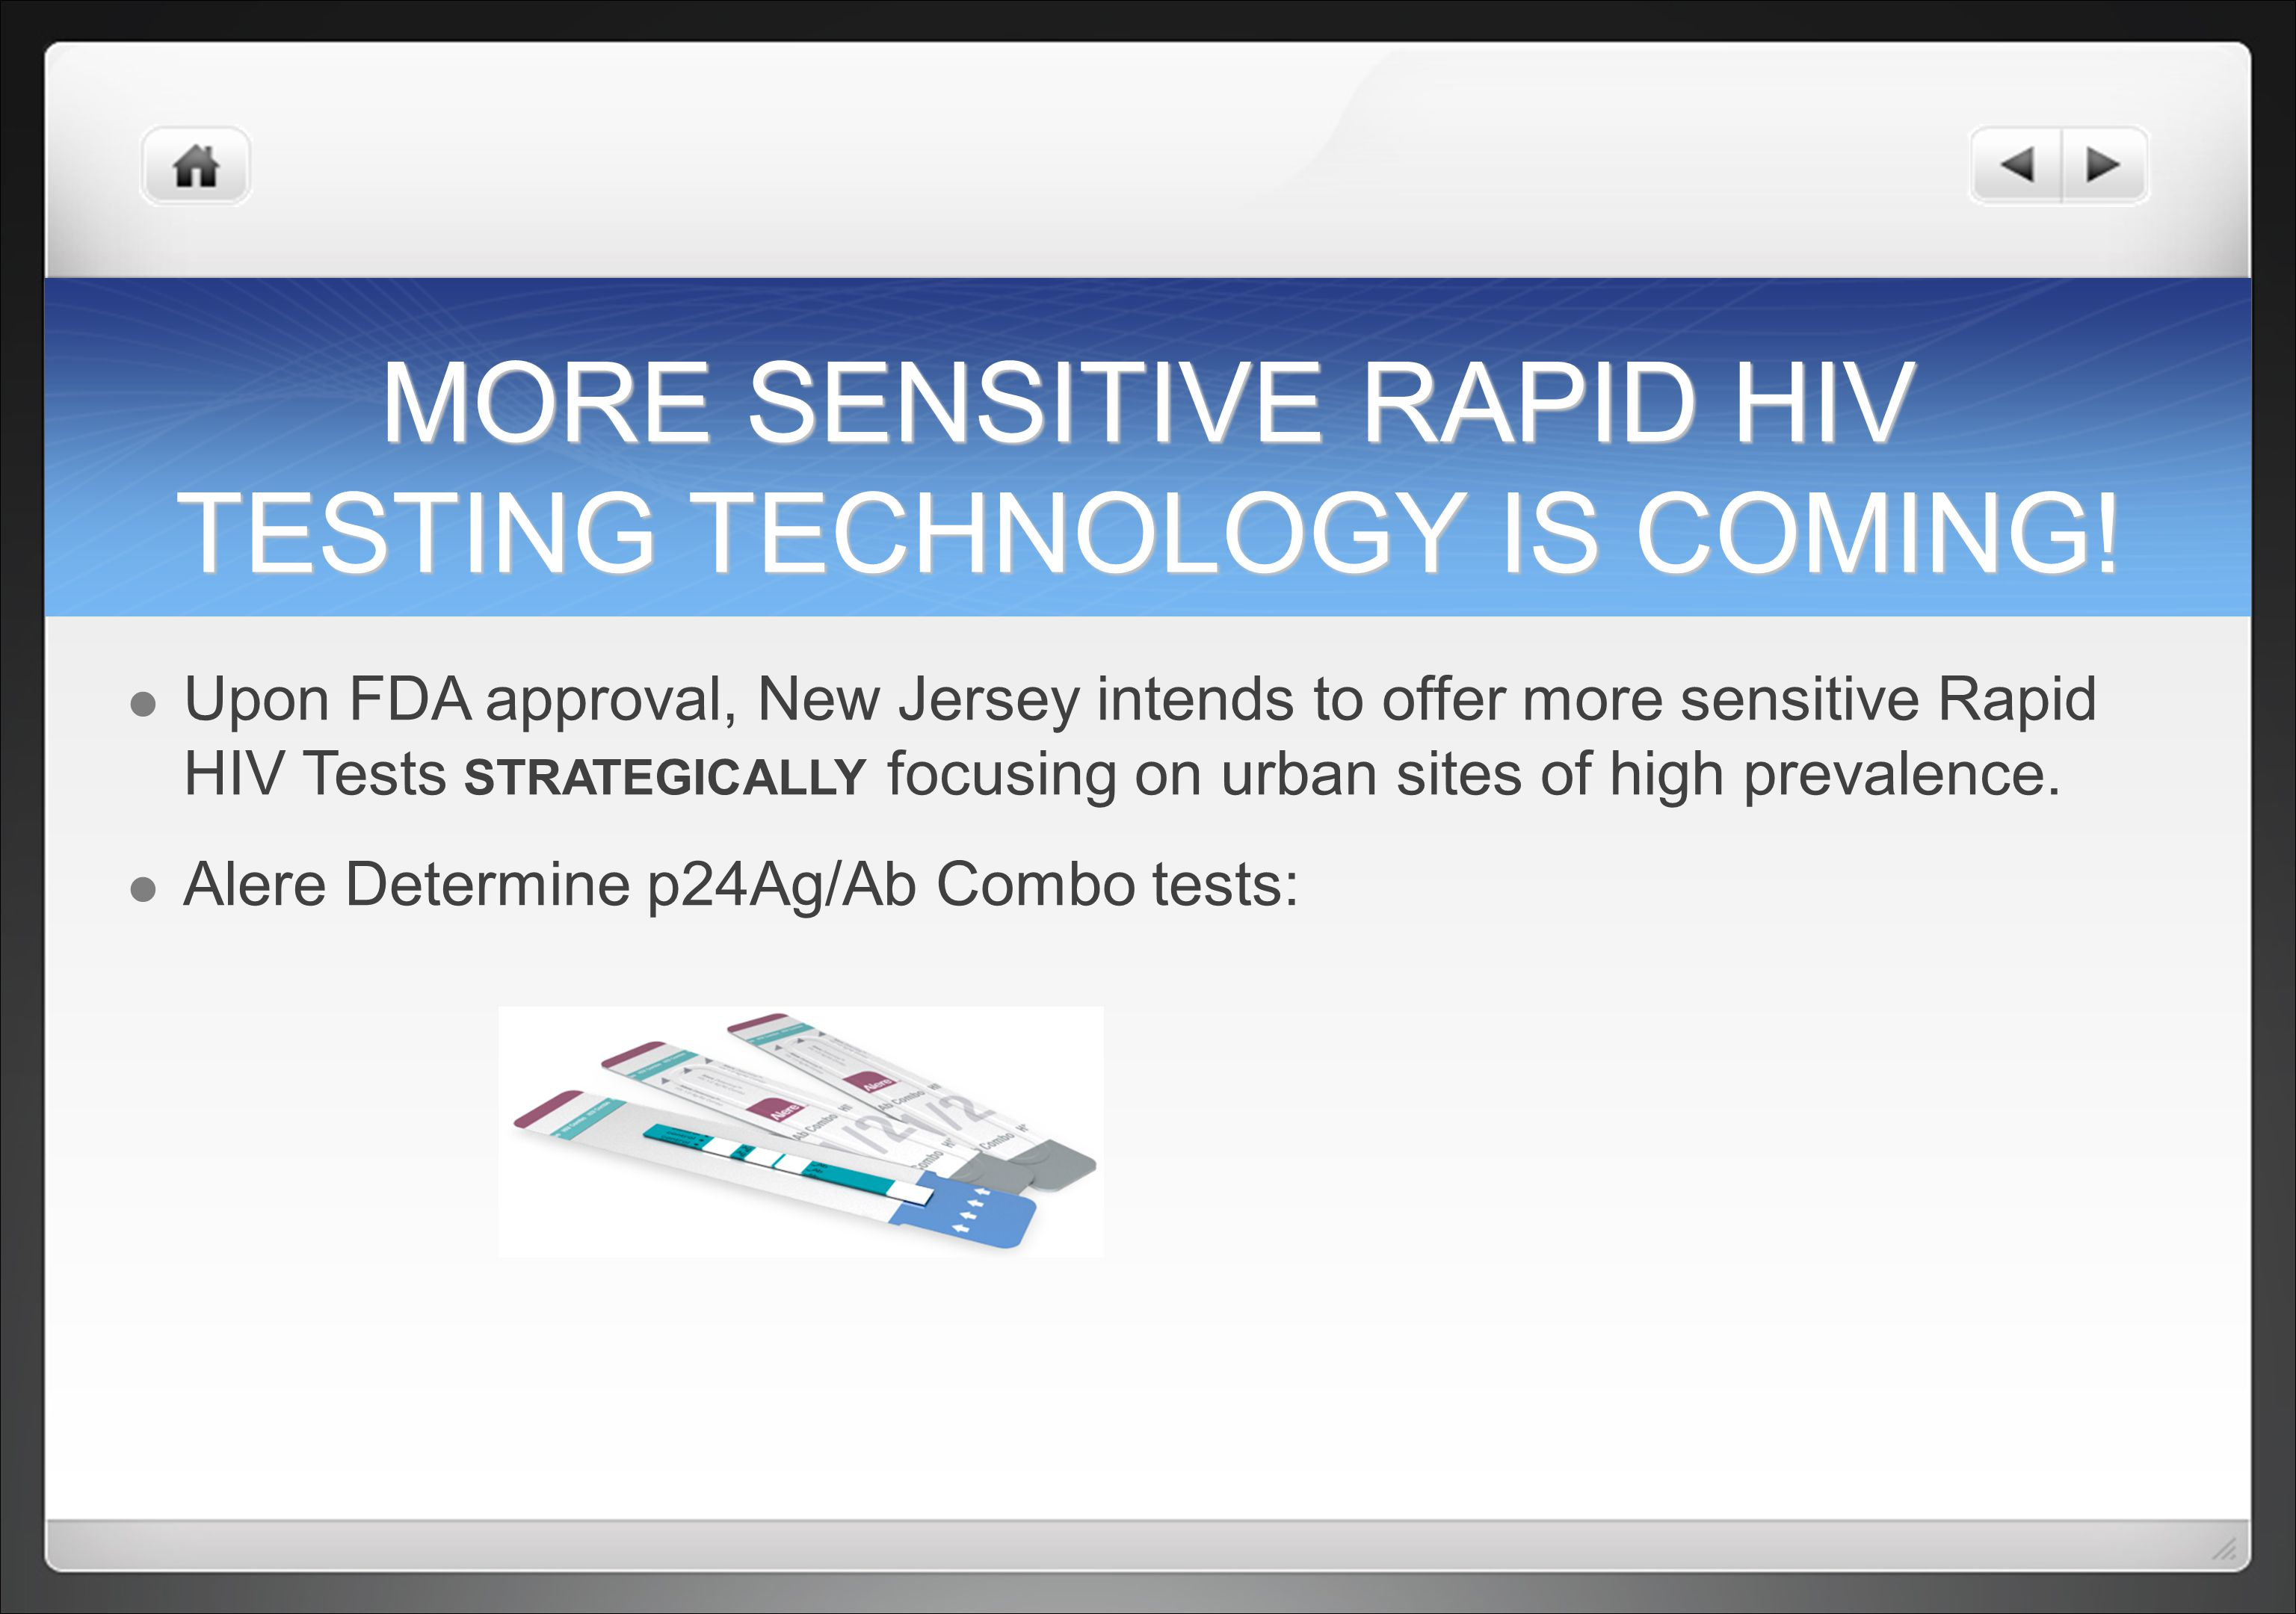 MORE SENSITIVE RAPID HIV TESTING TECHNOLOGY IS COMING!